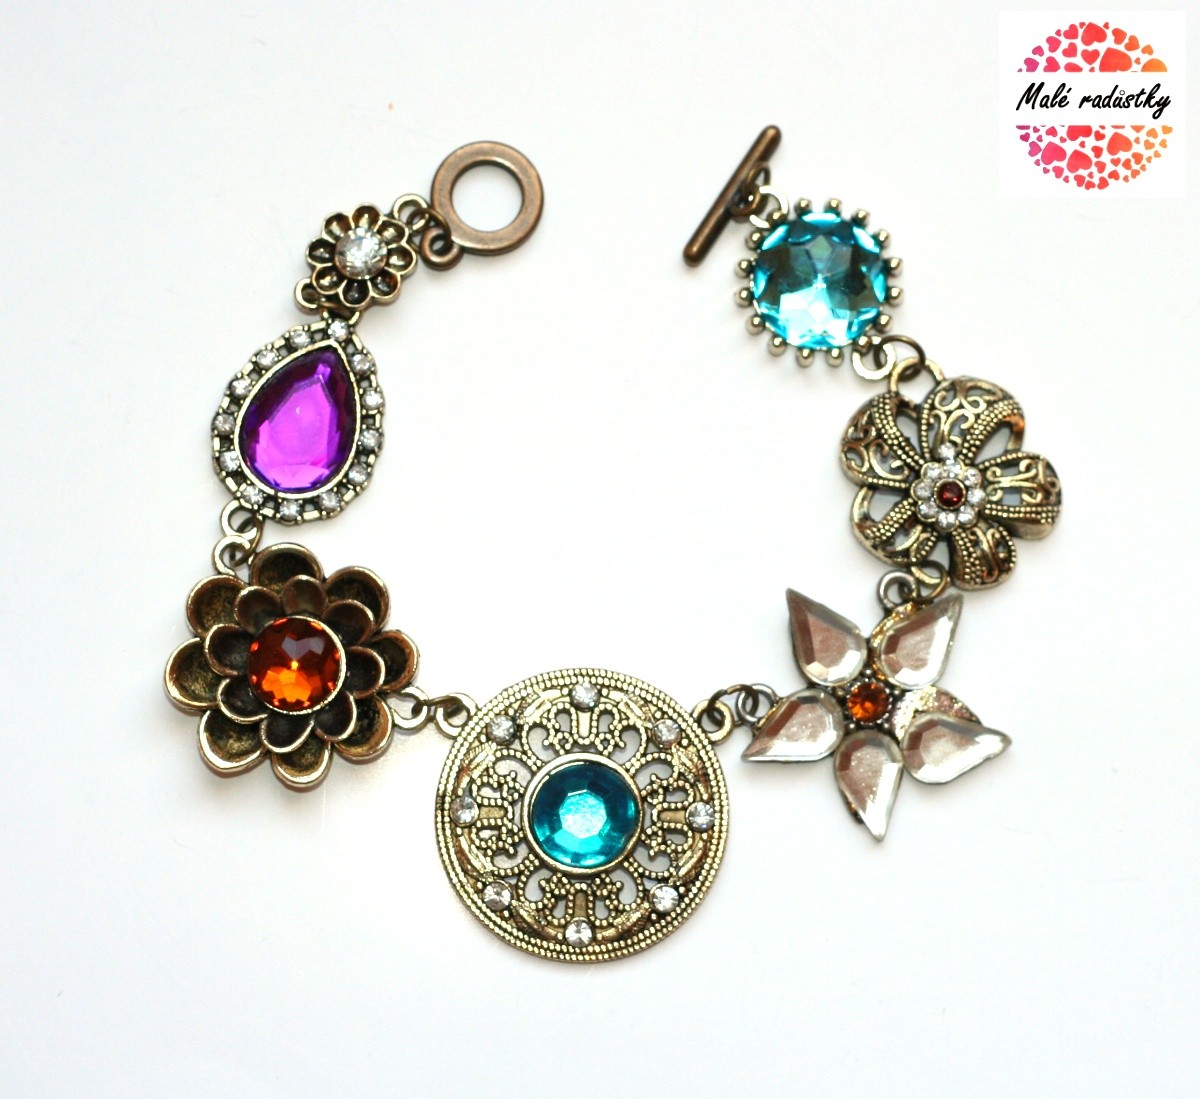 Náramek Fashion Jewerly - Vintage 075